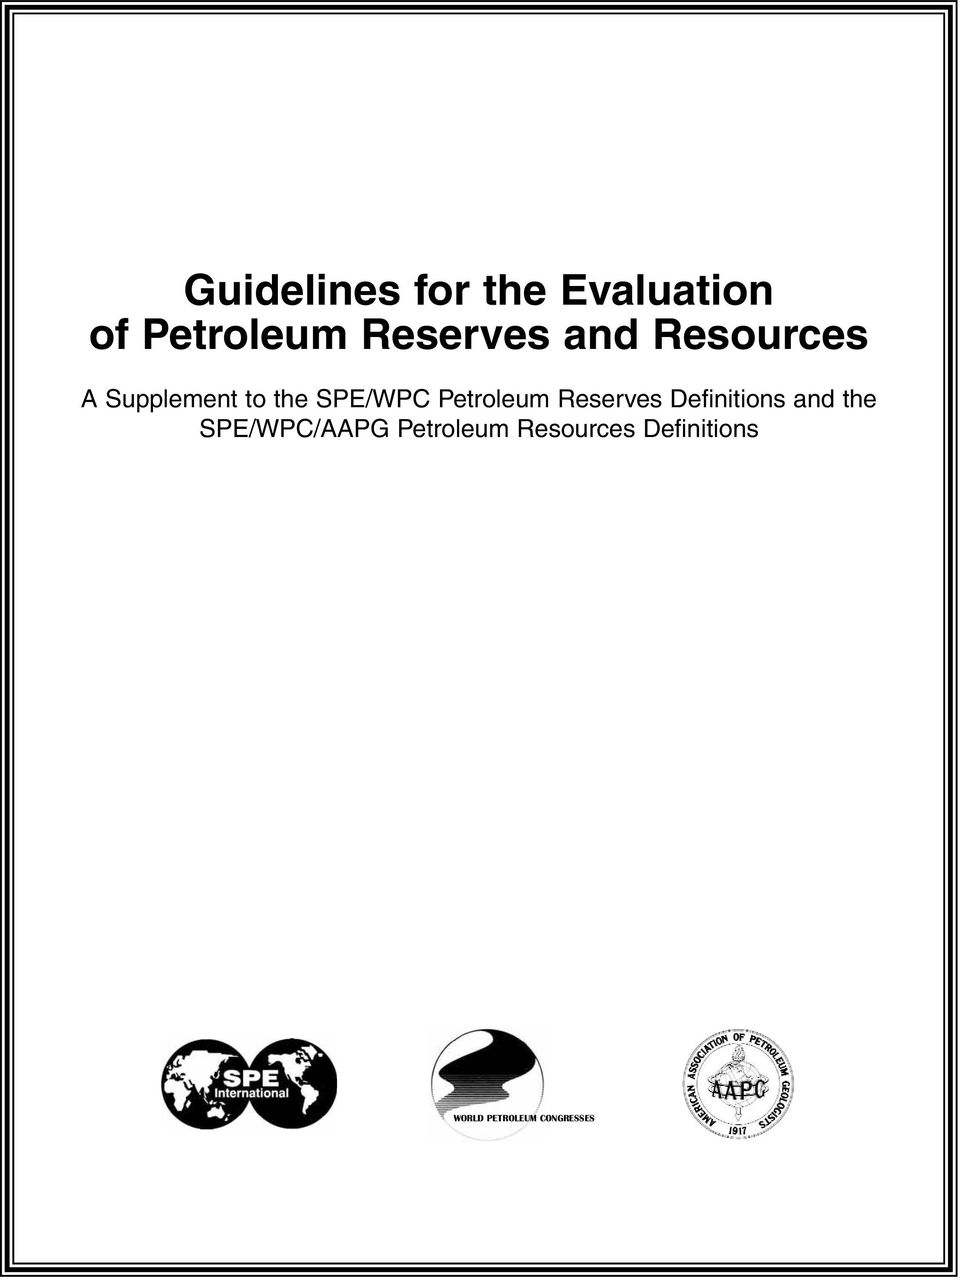 Petroleum Reserves Definitions and the